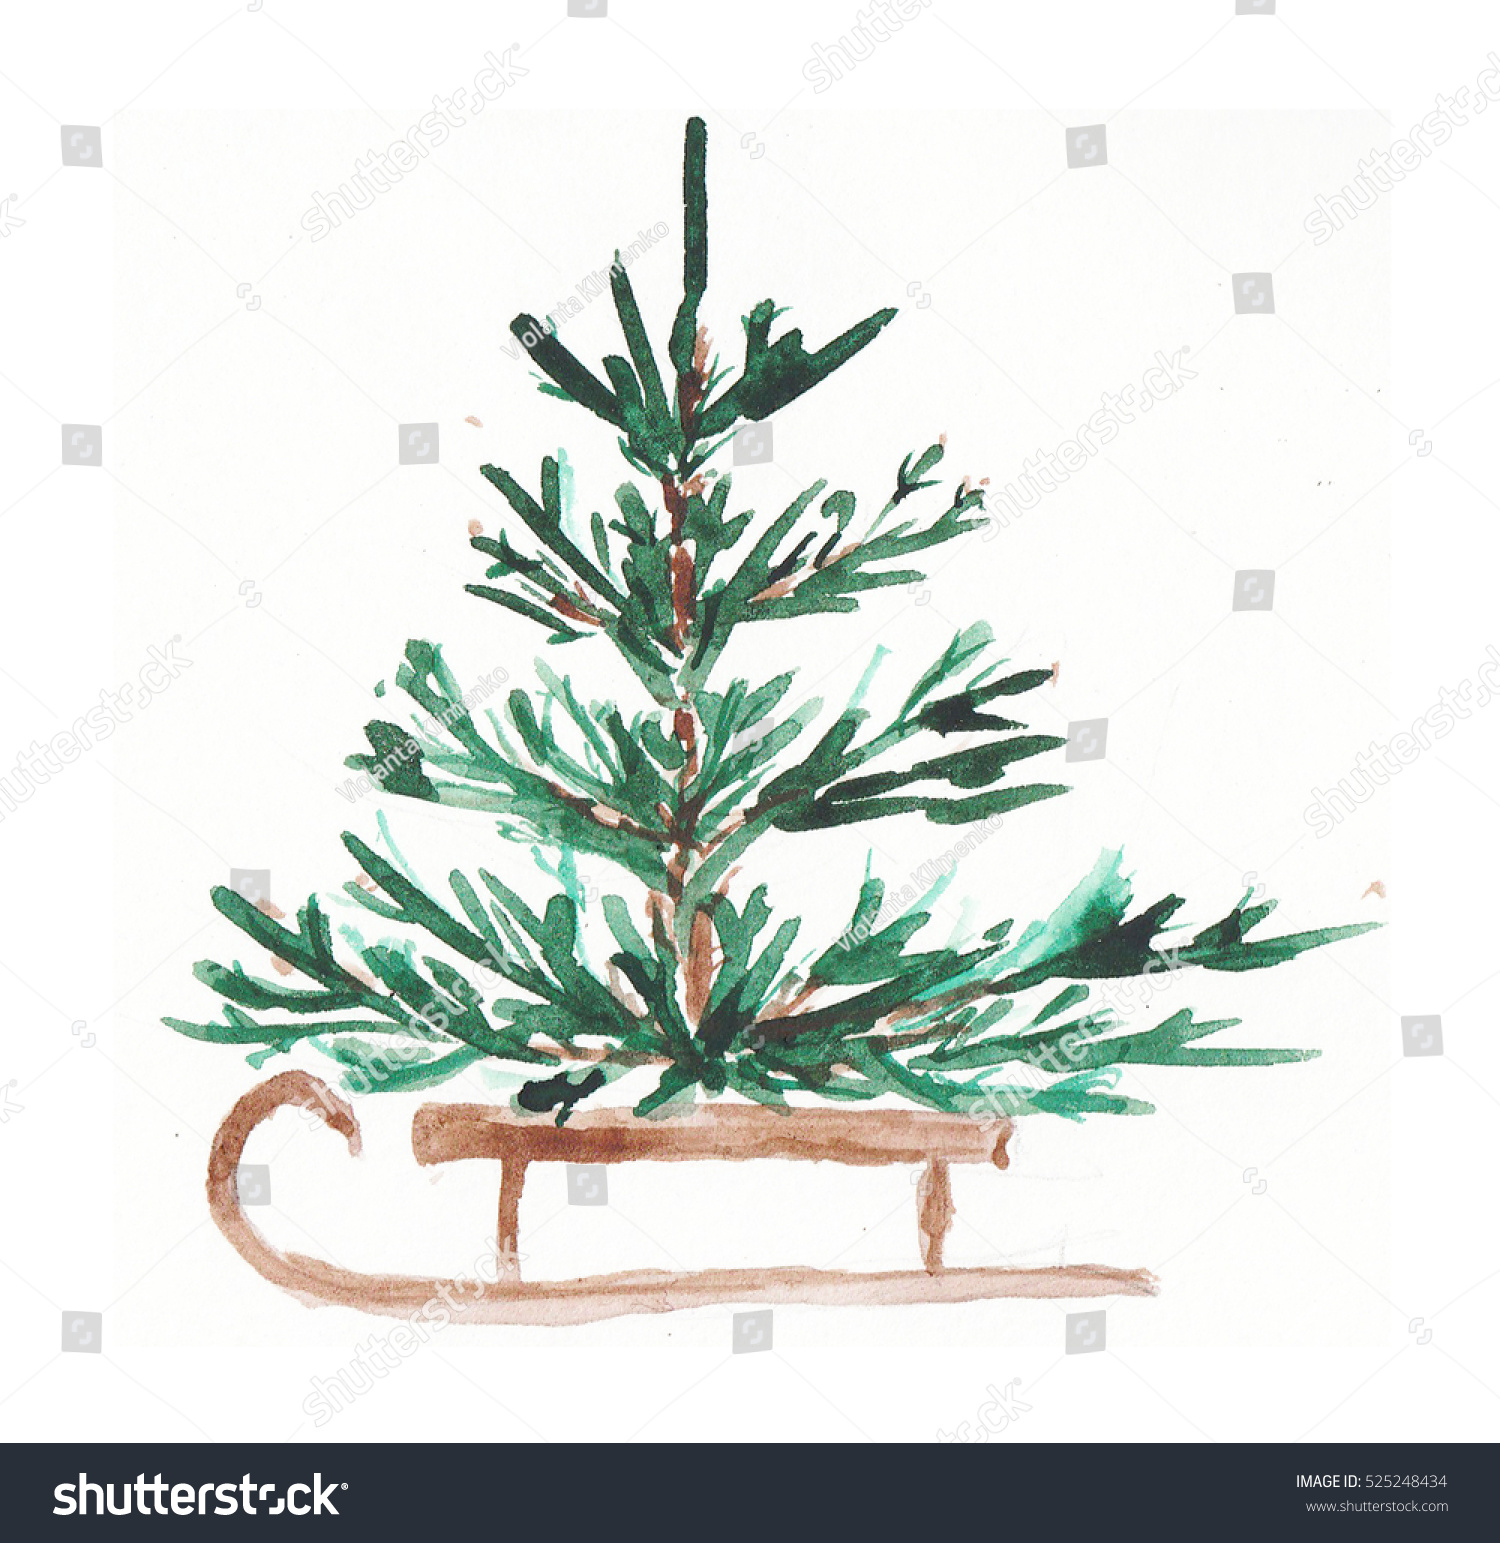 Watercolor Christmas Tree Stock Illustration 525248434 - Shutterstock